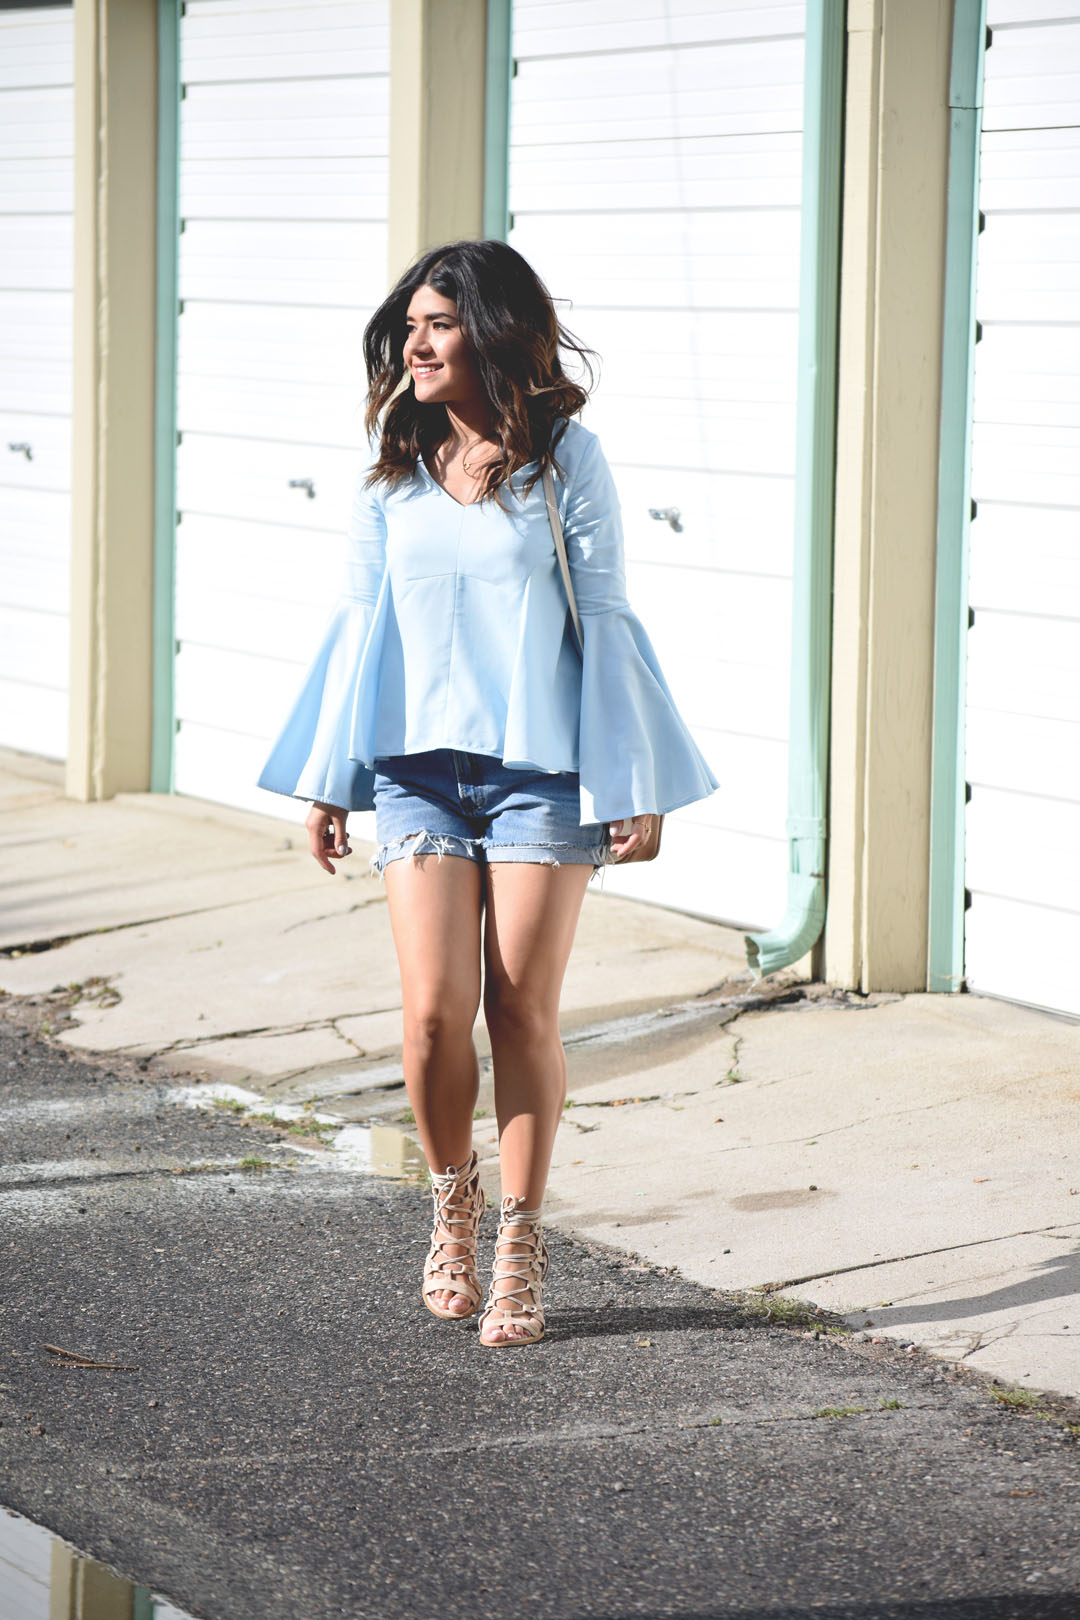 Carolina Hellal of the fashion blog Chic Talk wearing a Chicwish serene top with bell sleeves, vintage denim shorts and Lasula lace up sandals